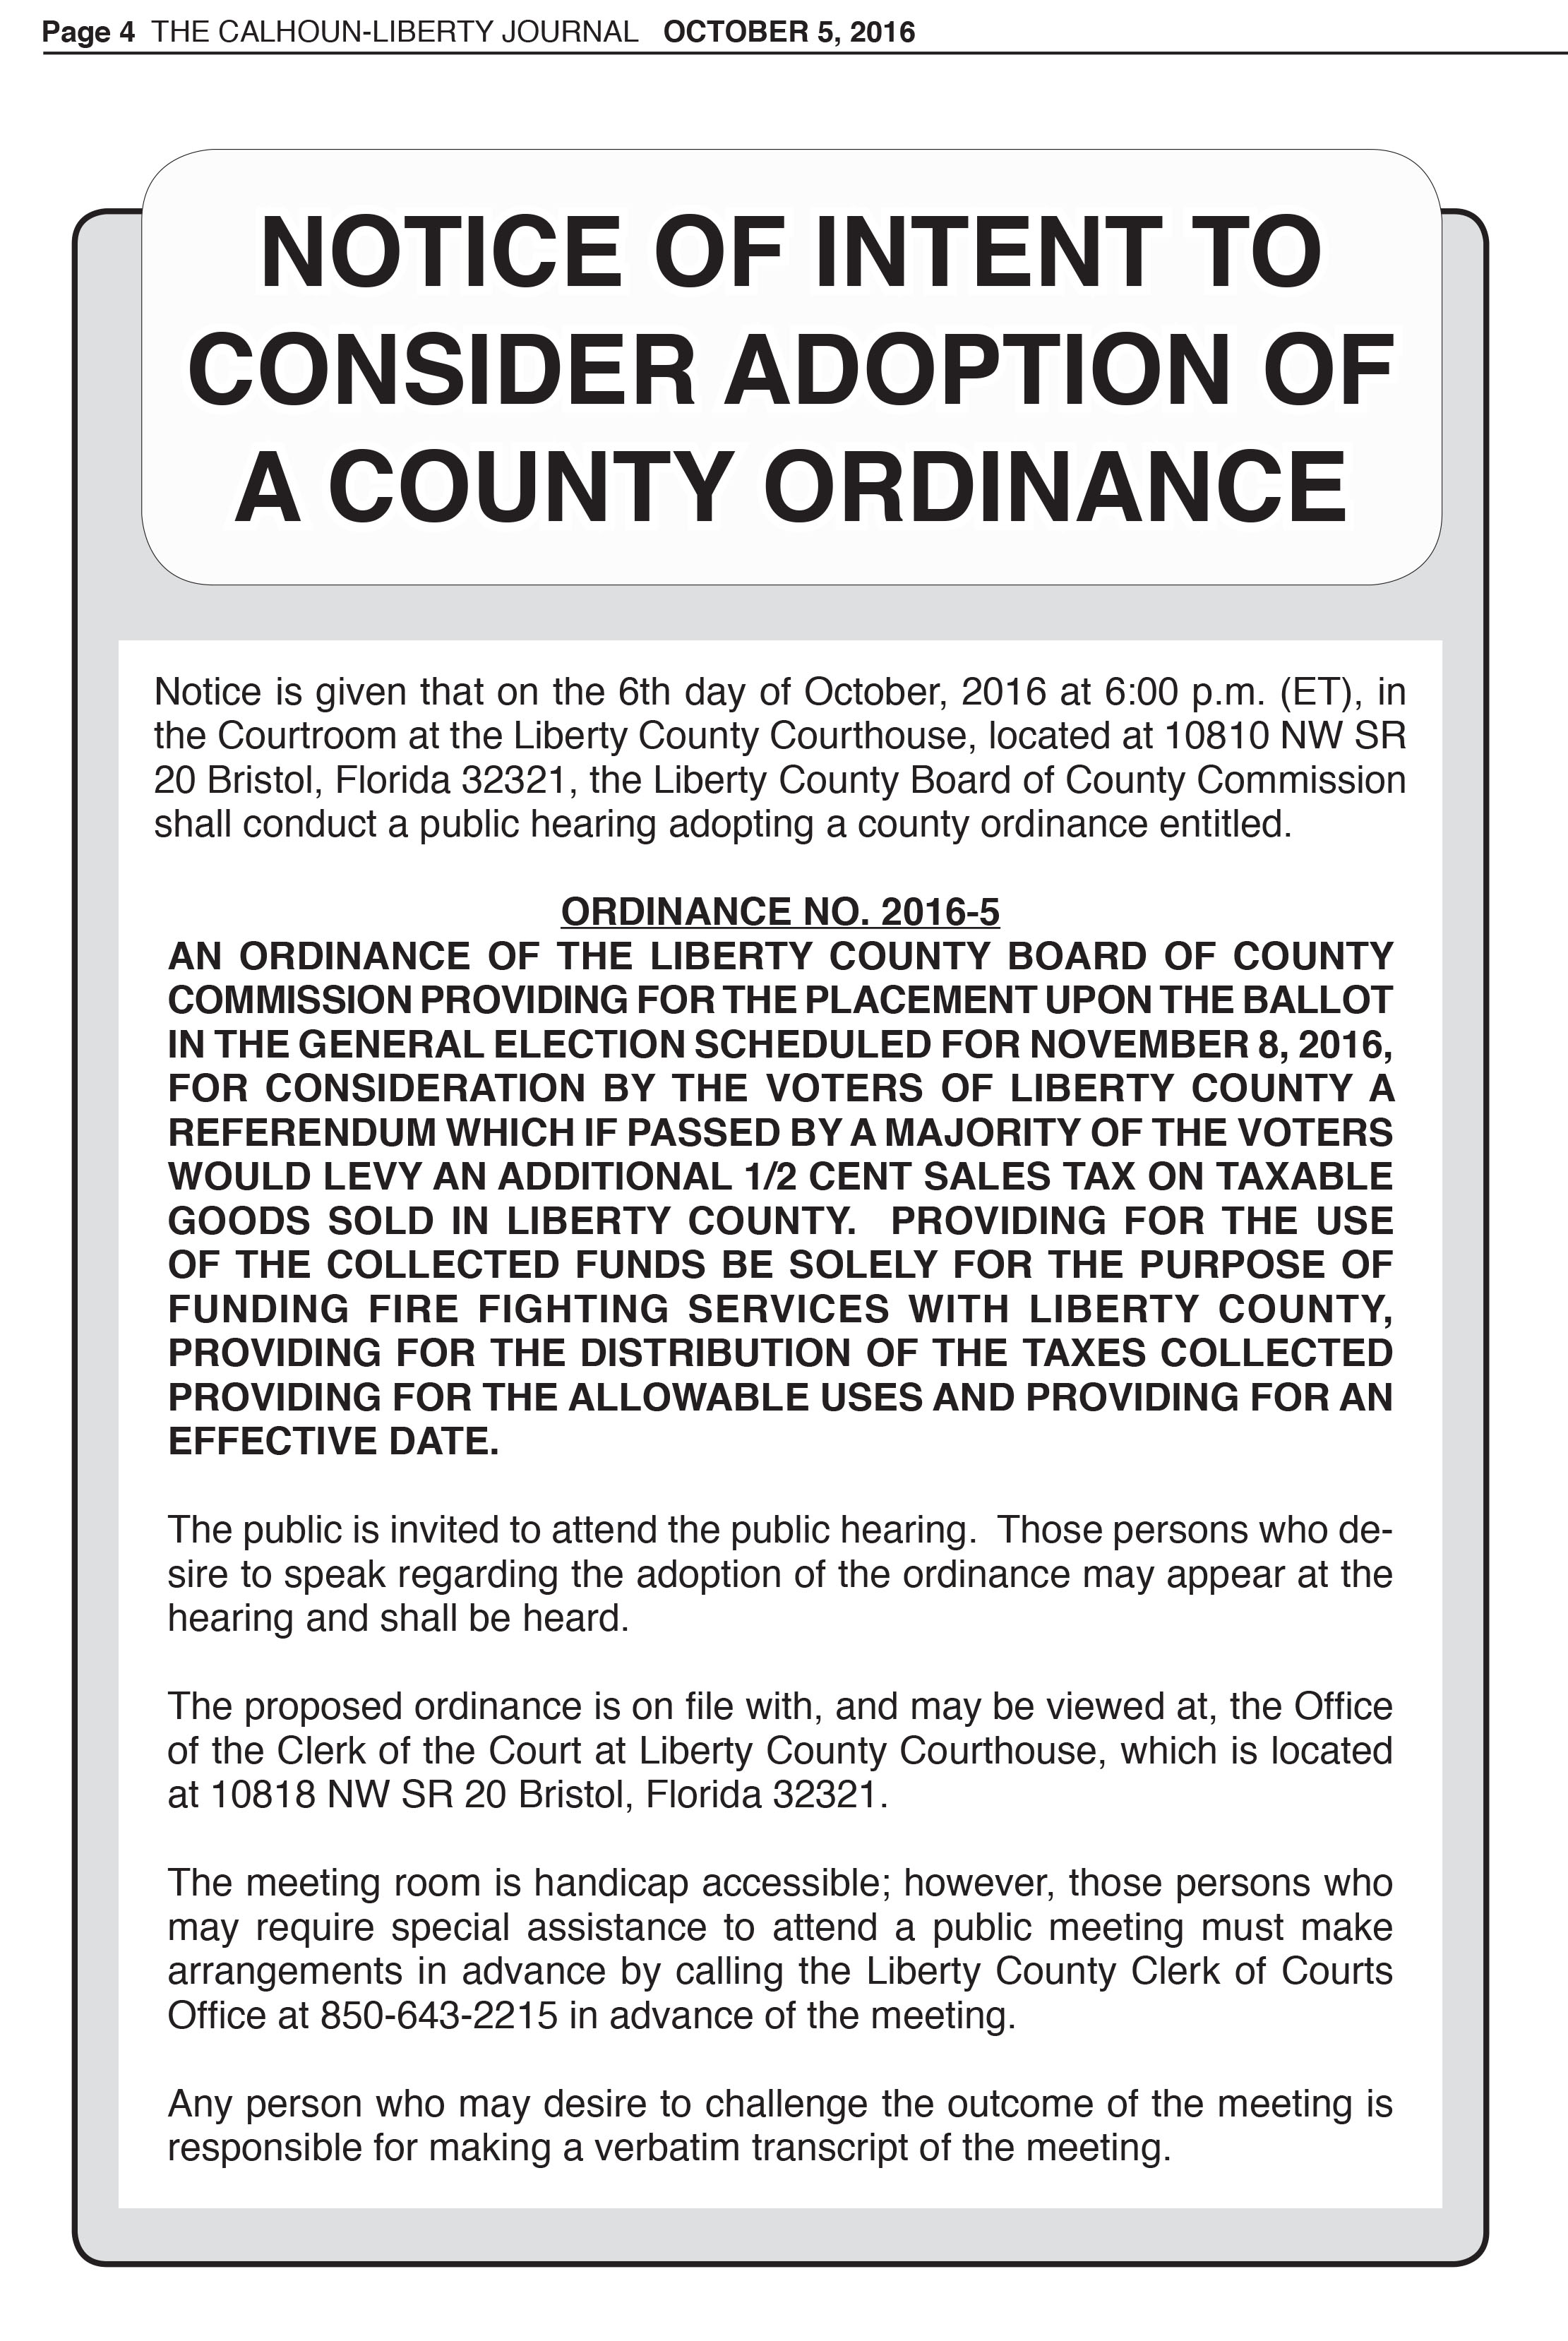 lcbcc-notice-of-intent-to-adopt-ordinance-2016-5-10-5-16